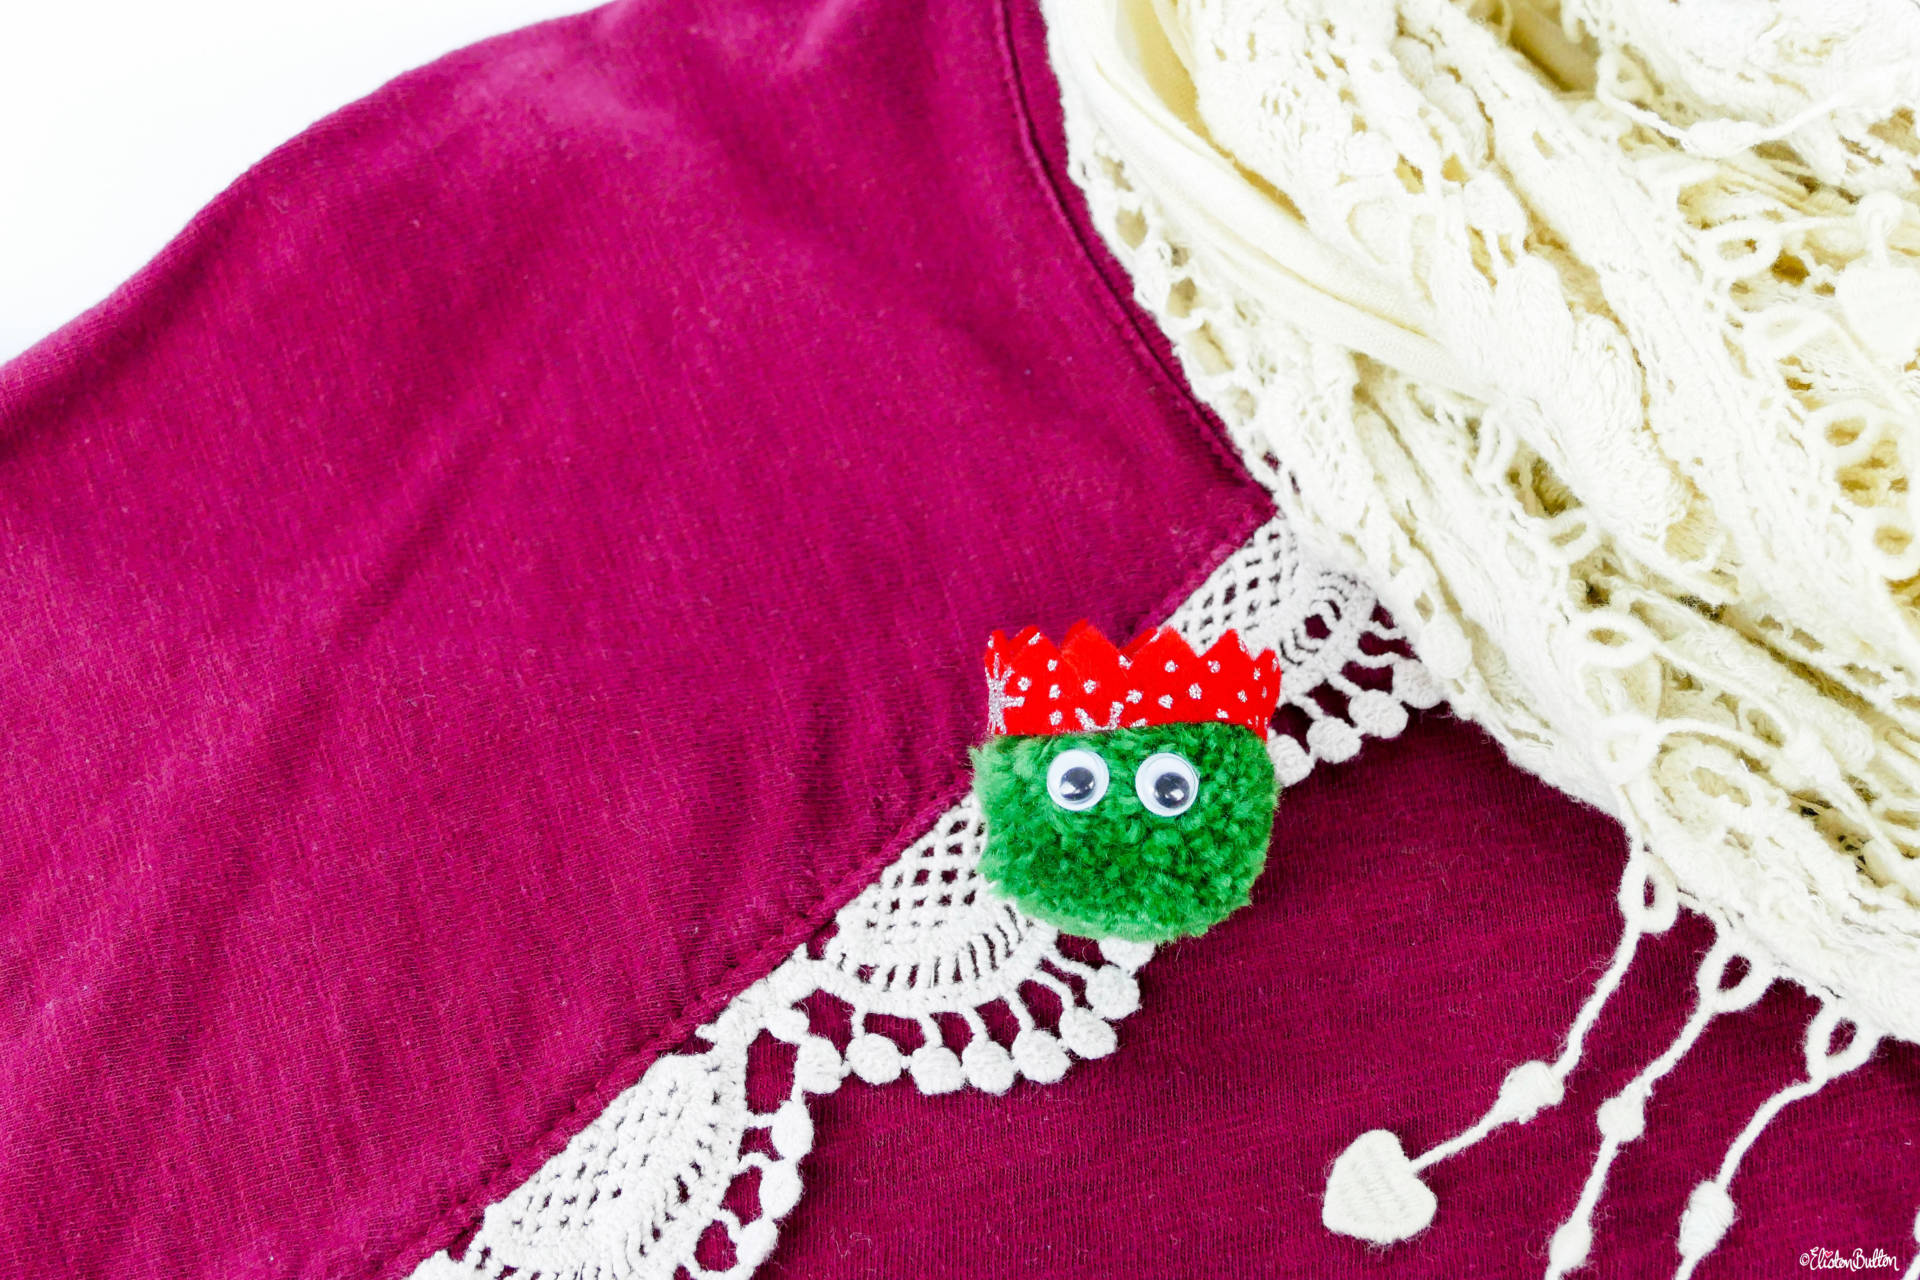 Dark Green Christmas Sprout Pom Pom Brooch on a Christmas Jumper with Red Glitter Party Hat by Eliston Button - Christmas Sprout Pom Pom Brooches! at www.elistonbutton.com - Eliston Button - That Crafty Kid – Art, Design, Craft & Adventure.